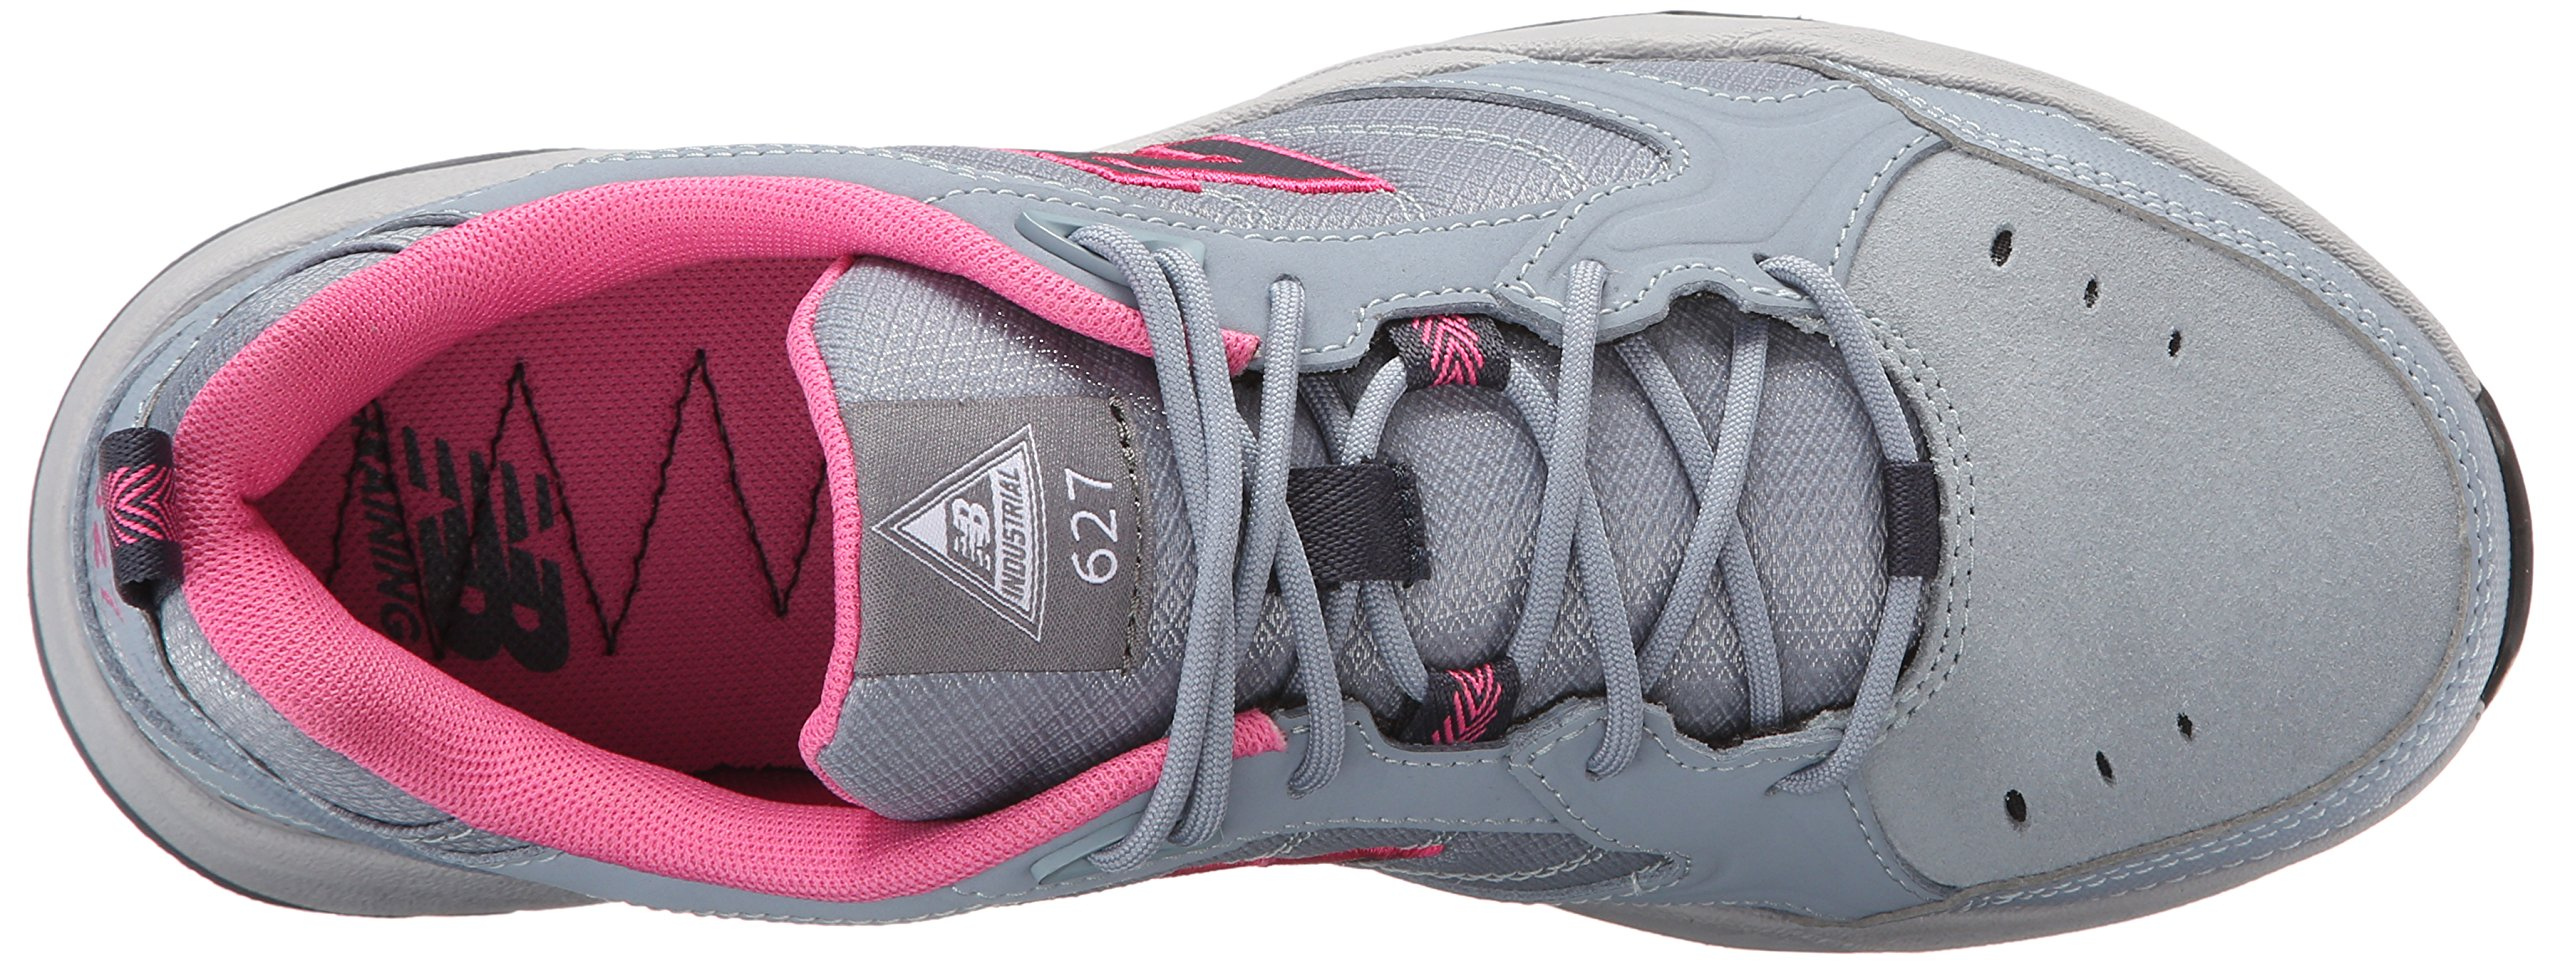 New Balance Women's WID627V1 Steel Toe Training Work Shoe,Light Grey/Pink,8 B US by New Balance (Image #8)